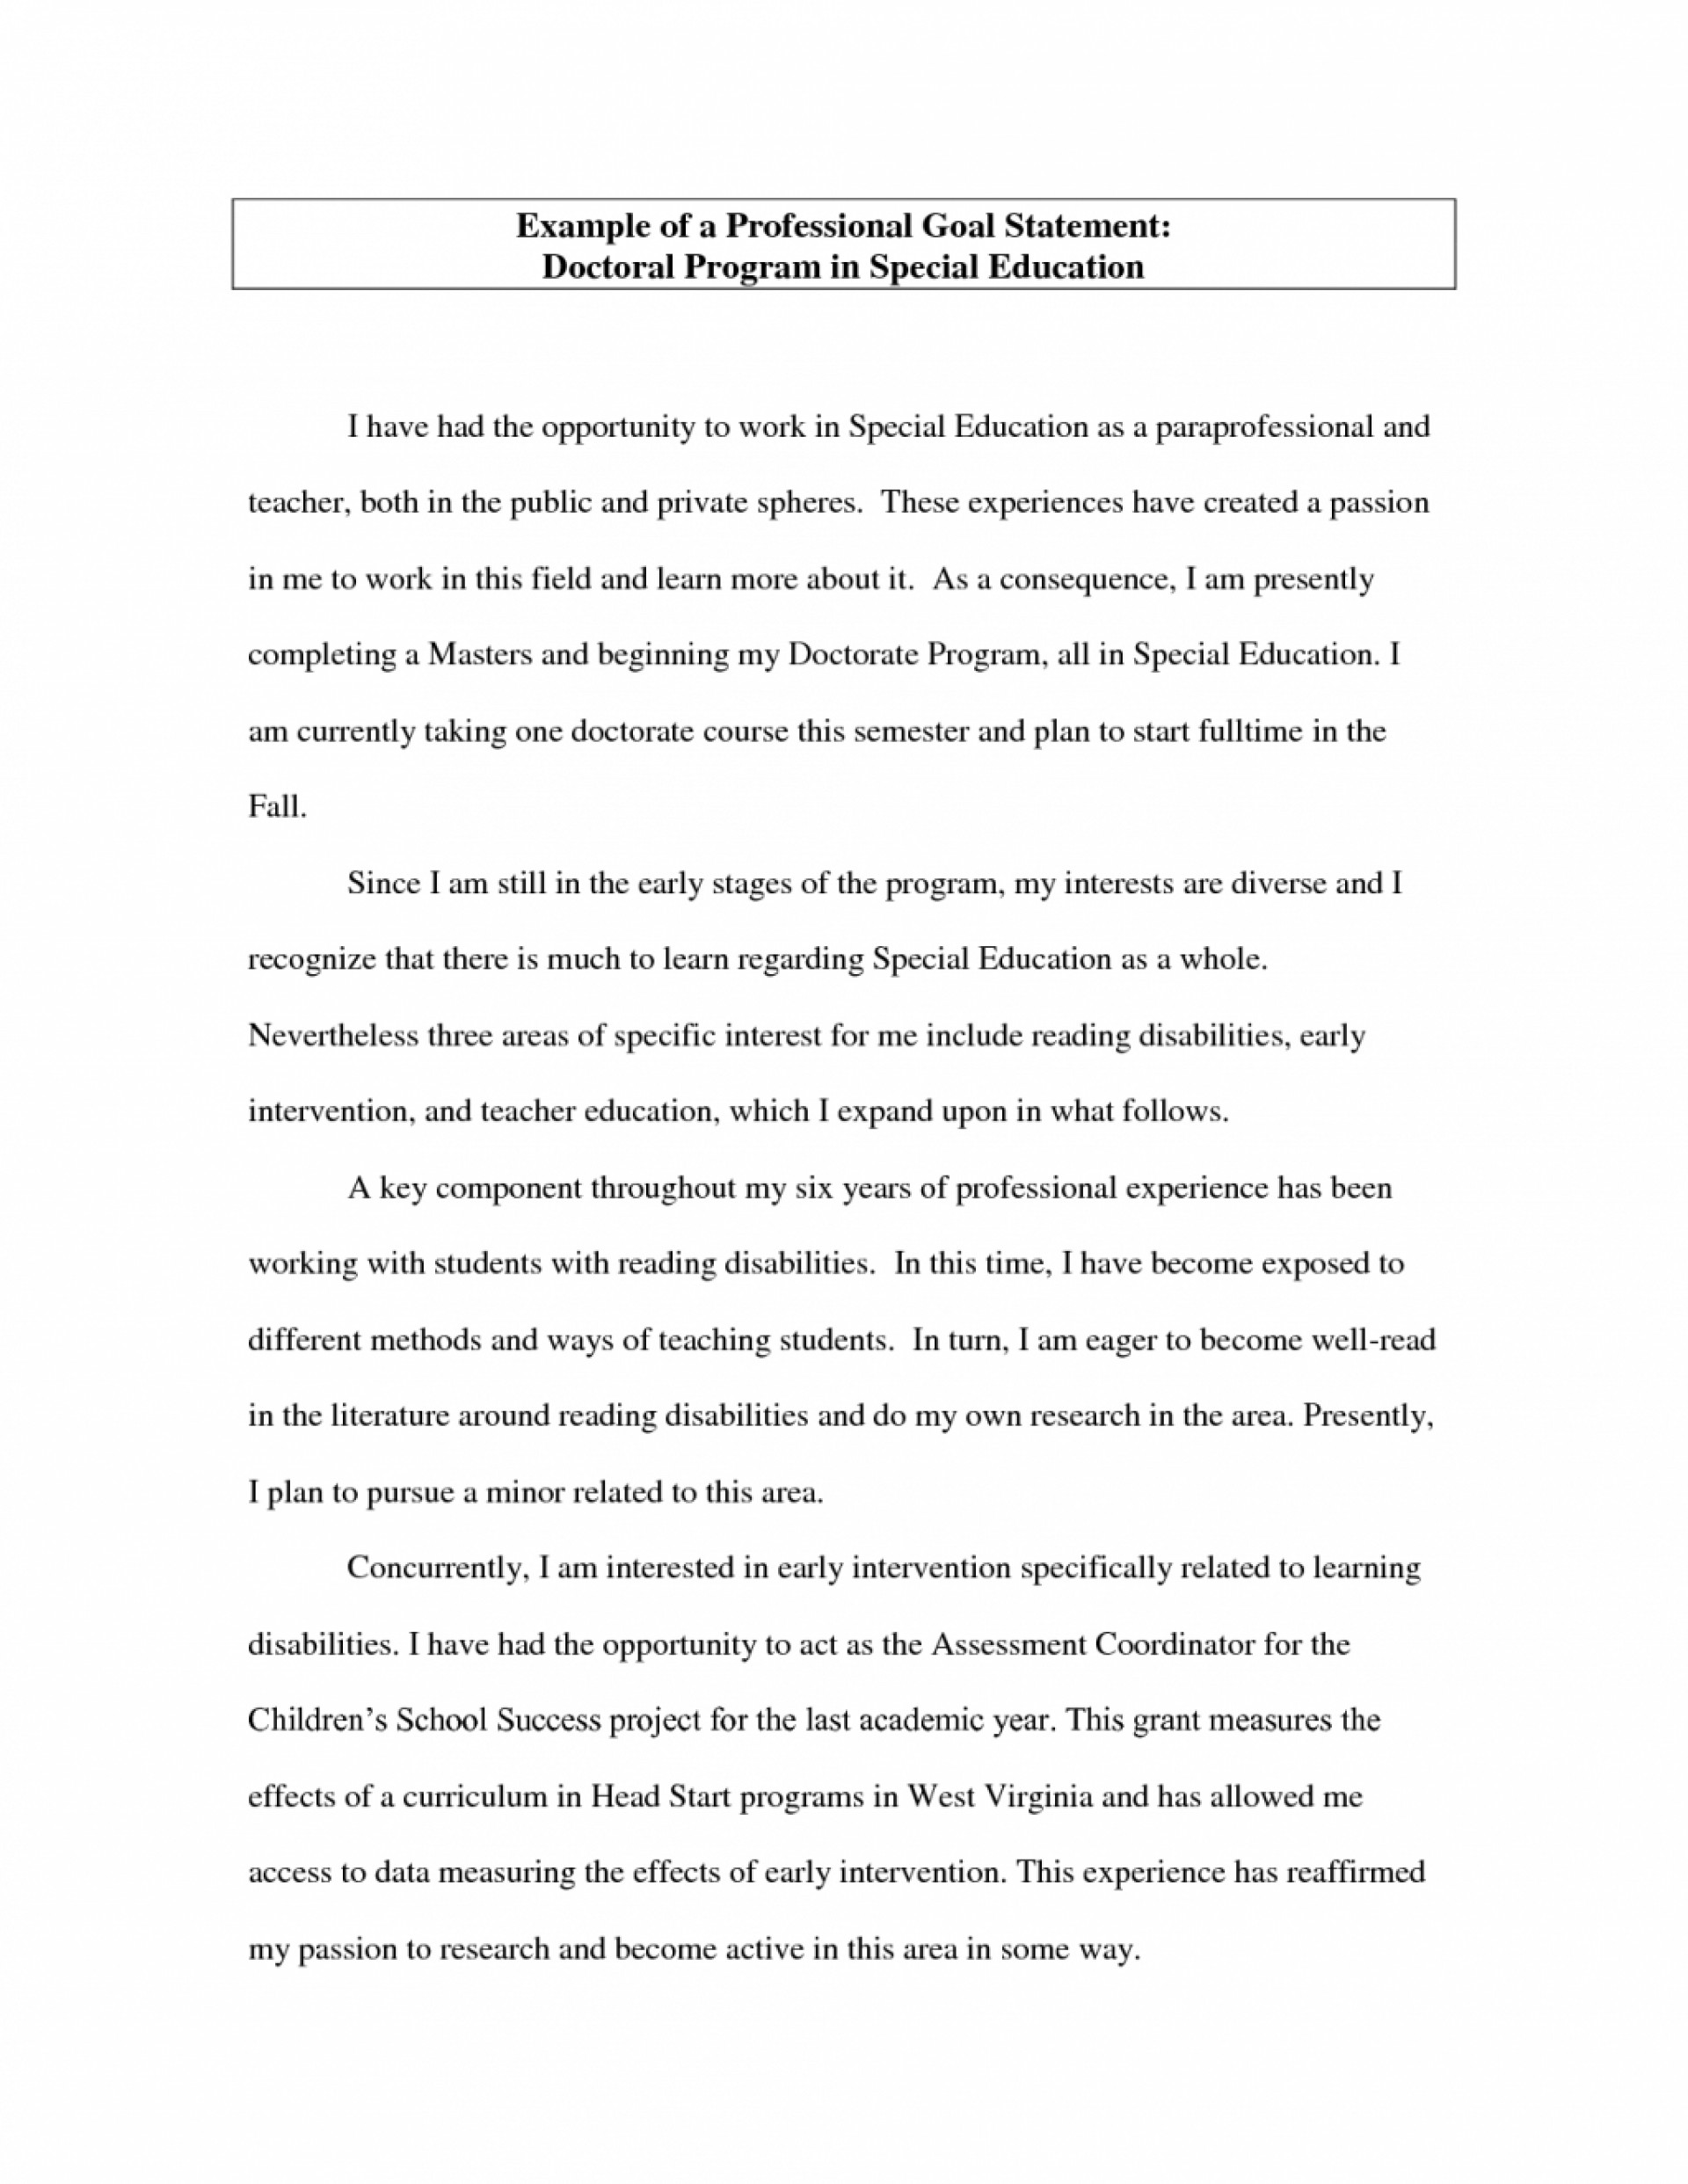 004 Research Paper Career Essay Examples School Reports In Class Of Their Own Telegraph The Topics Goal Statement Zdxttkpg Nursing20 1024x1325 College Fascinating Sample 1920